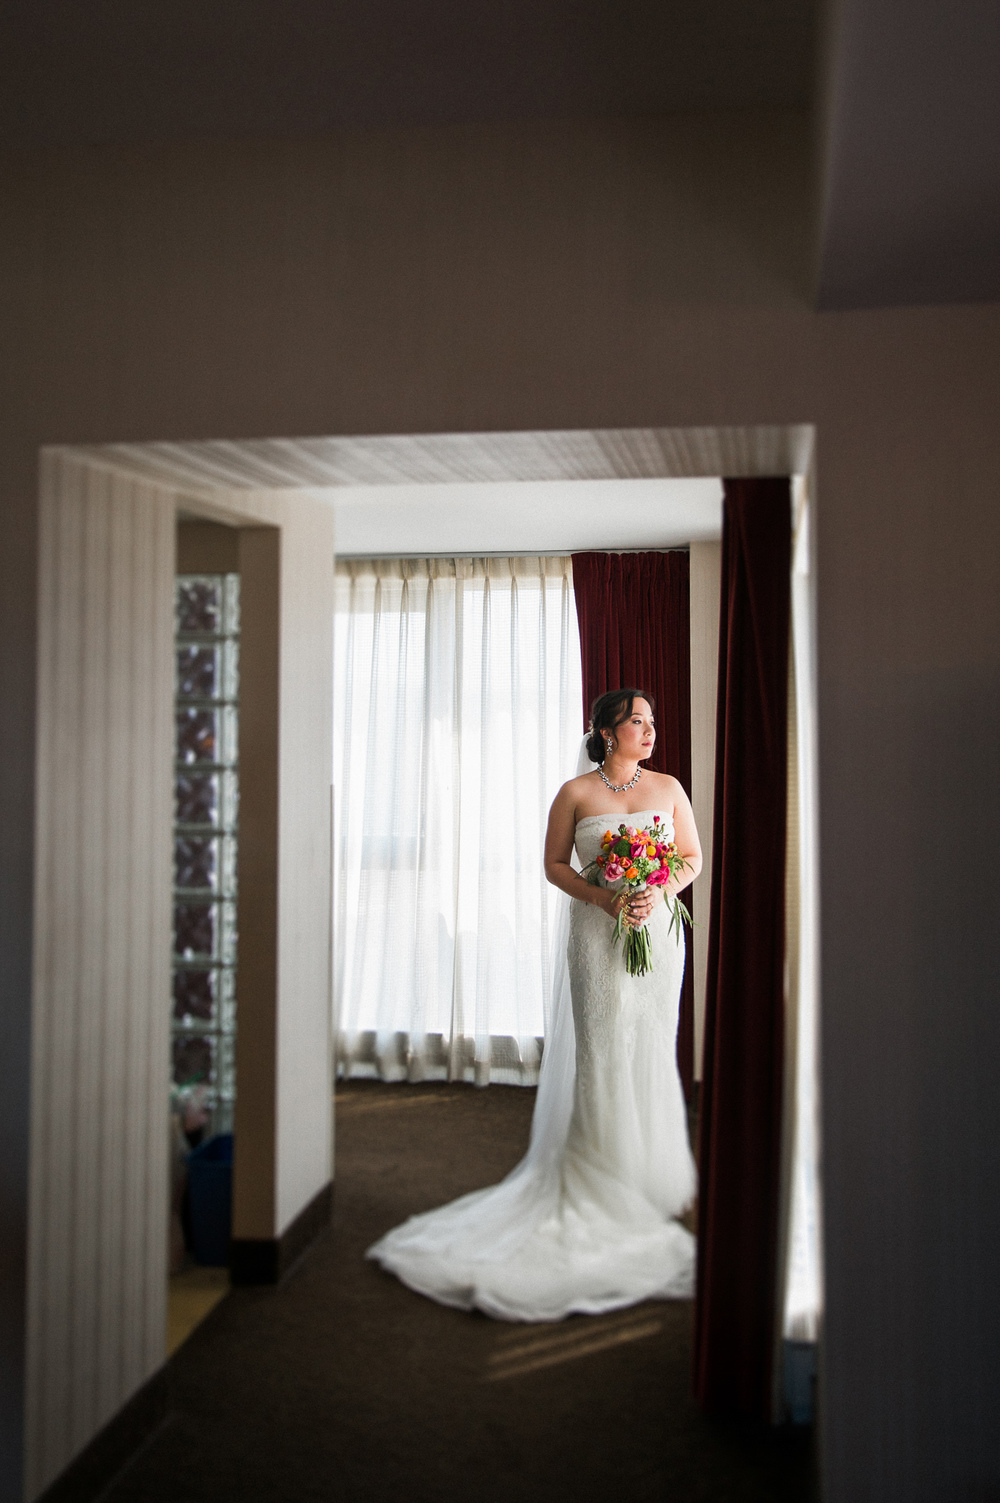 Wall Framed Bridal Portrait with Window Light